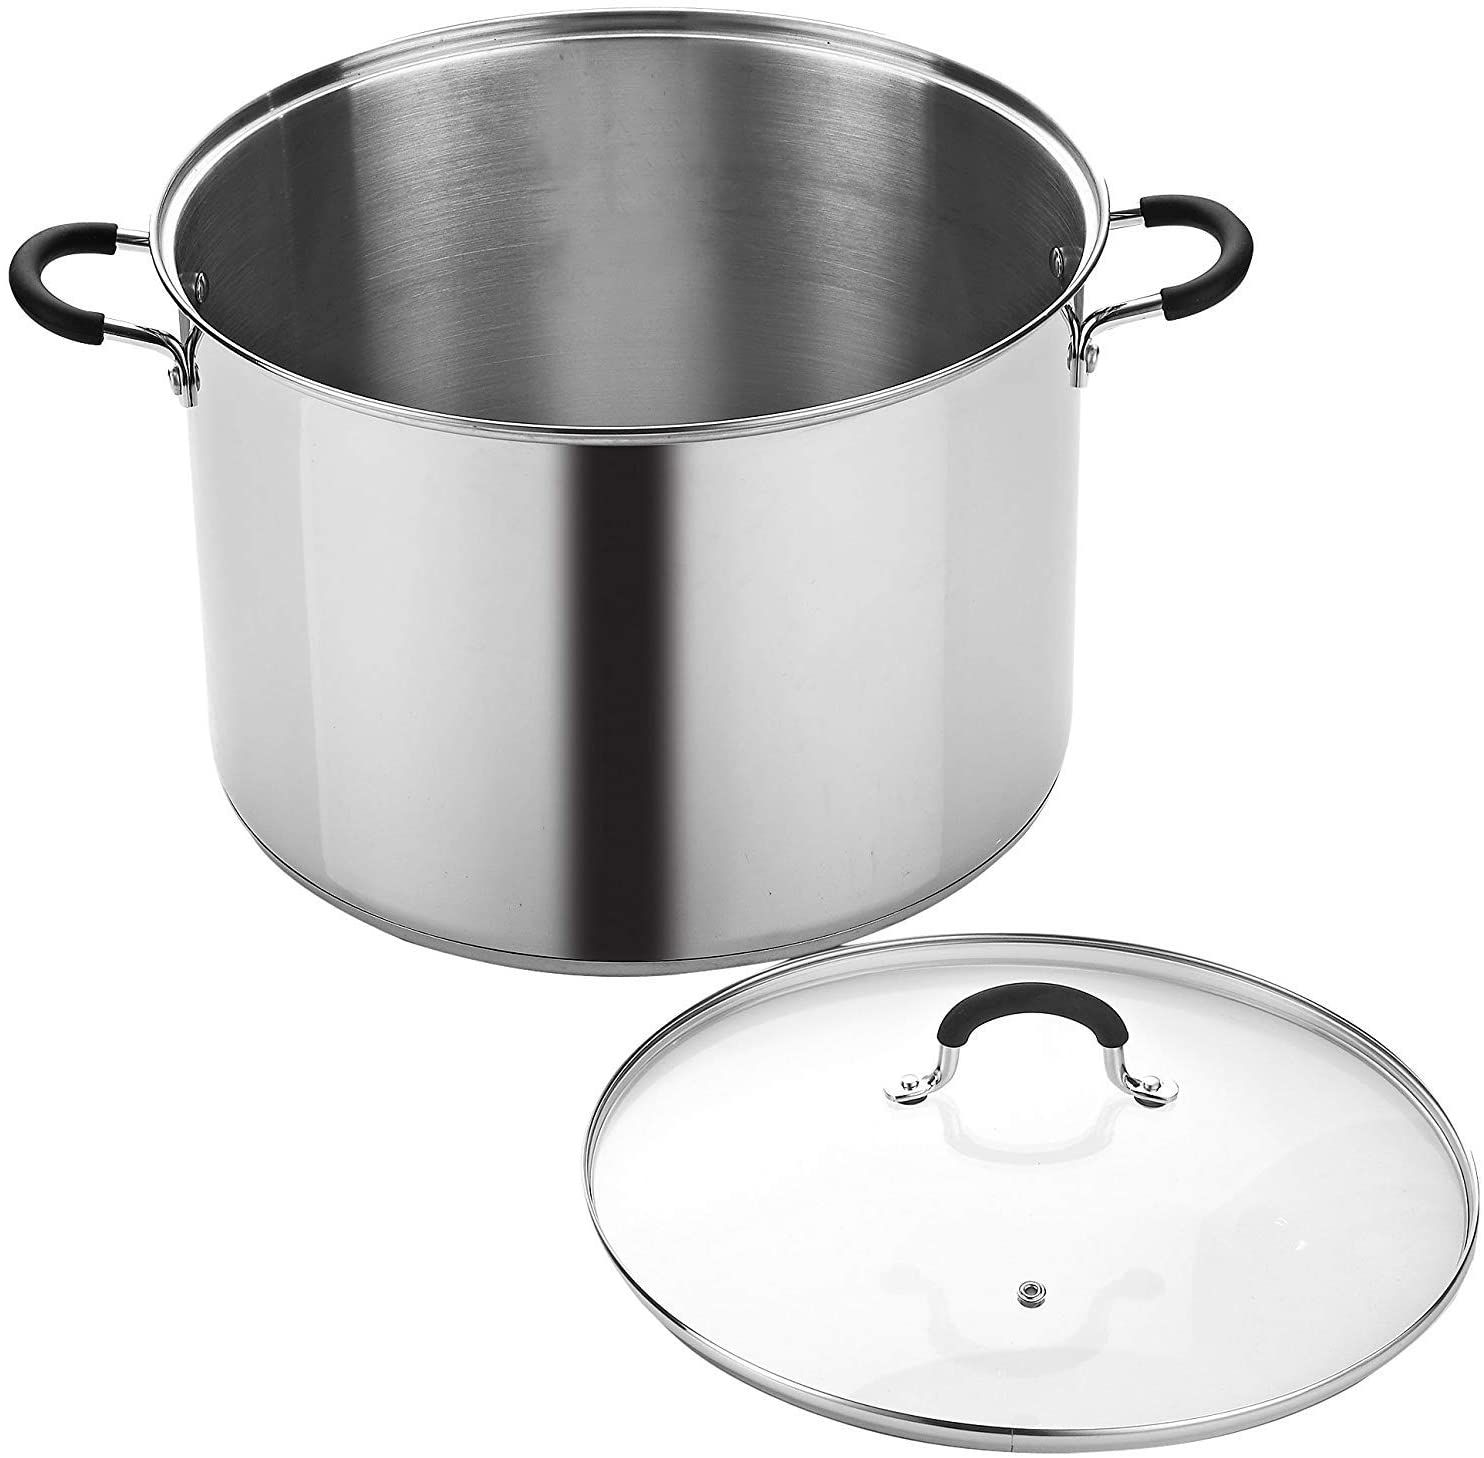 Cook N Home 12-Quart Stainless Steel Stockpot with Lid